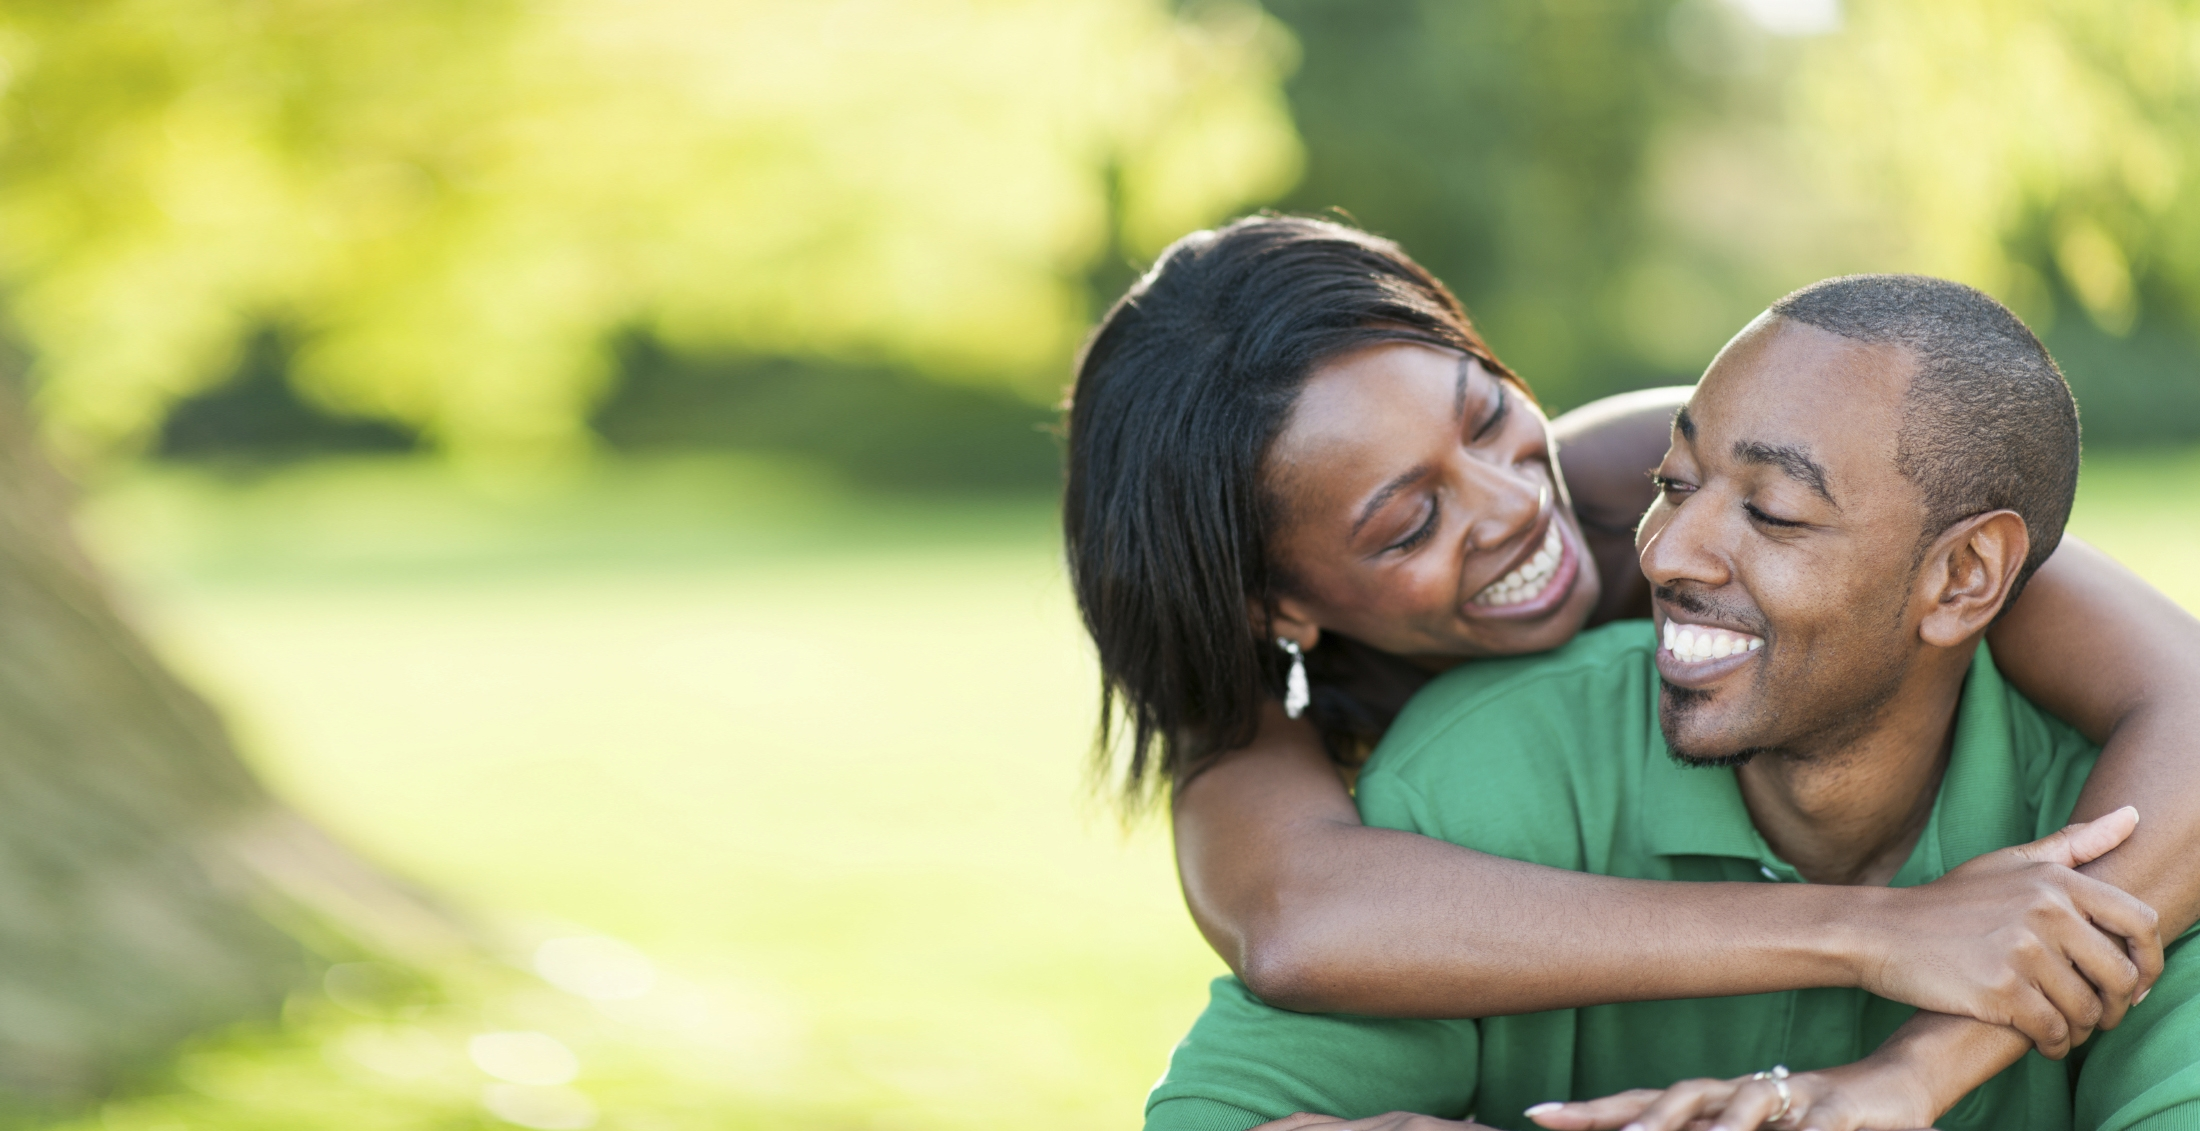 7 Things you should never tell people about your relationship